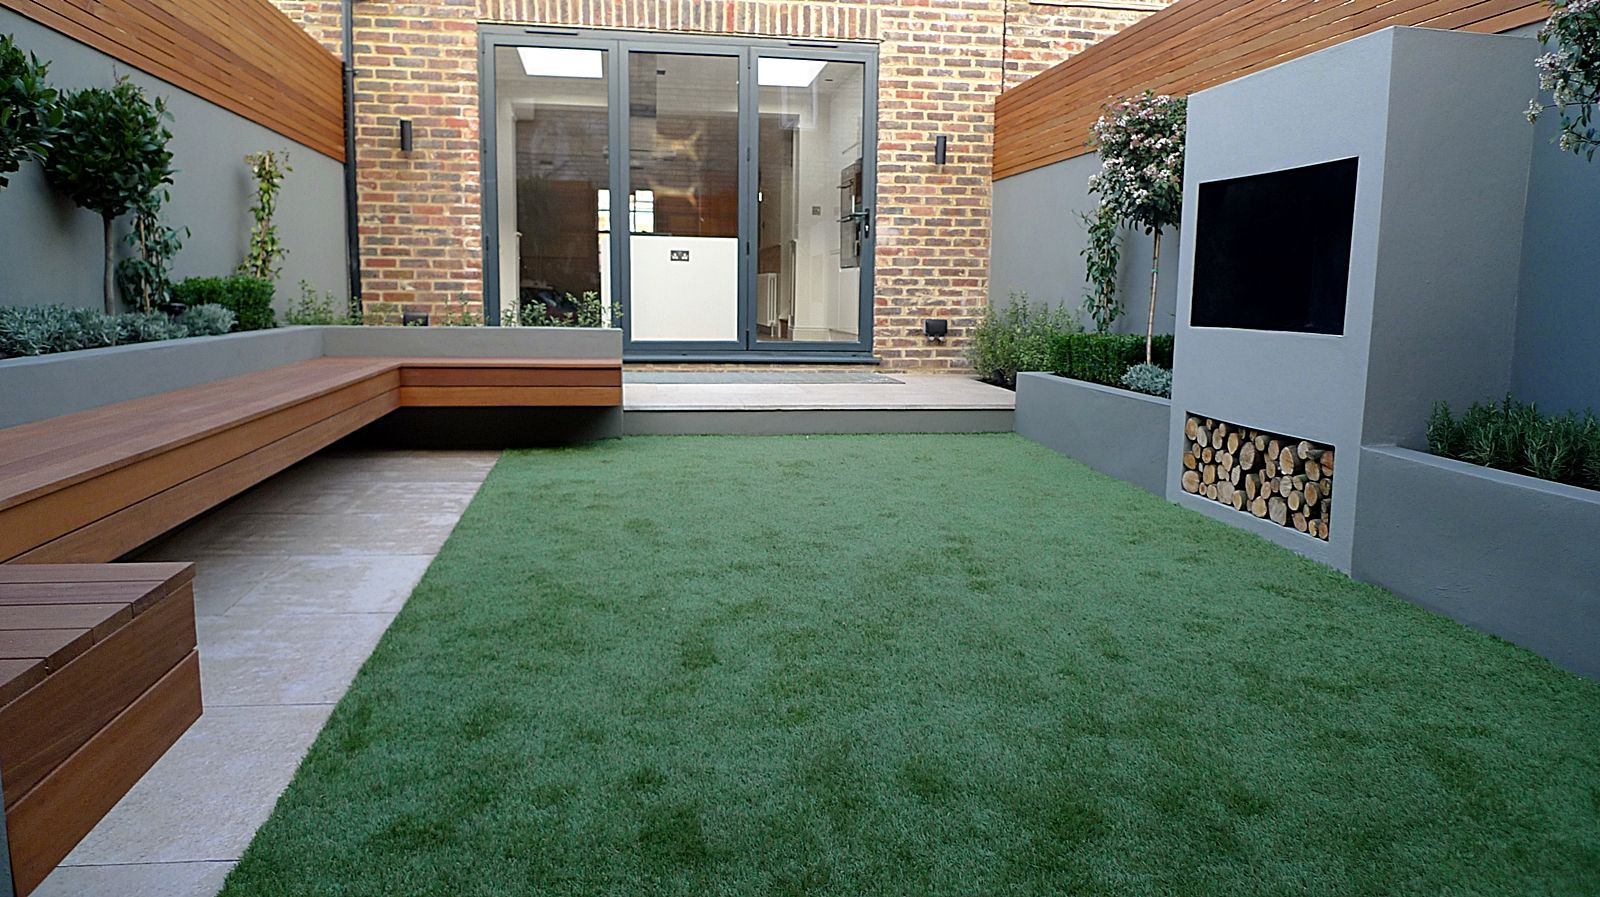 Artificial Grass Garden Designs modern garden design london artificial grass travertine paving render painted raised beds 2018 Trending 15 Garden Designs To Watch For In 2018